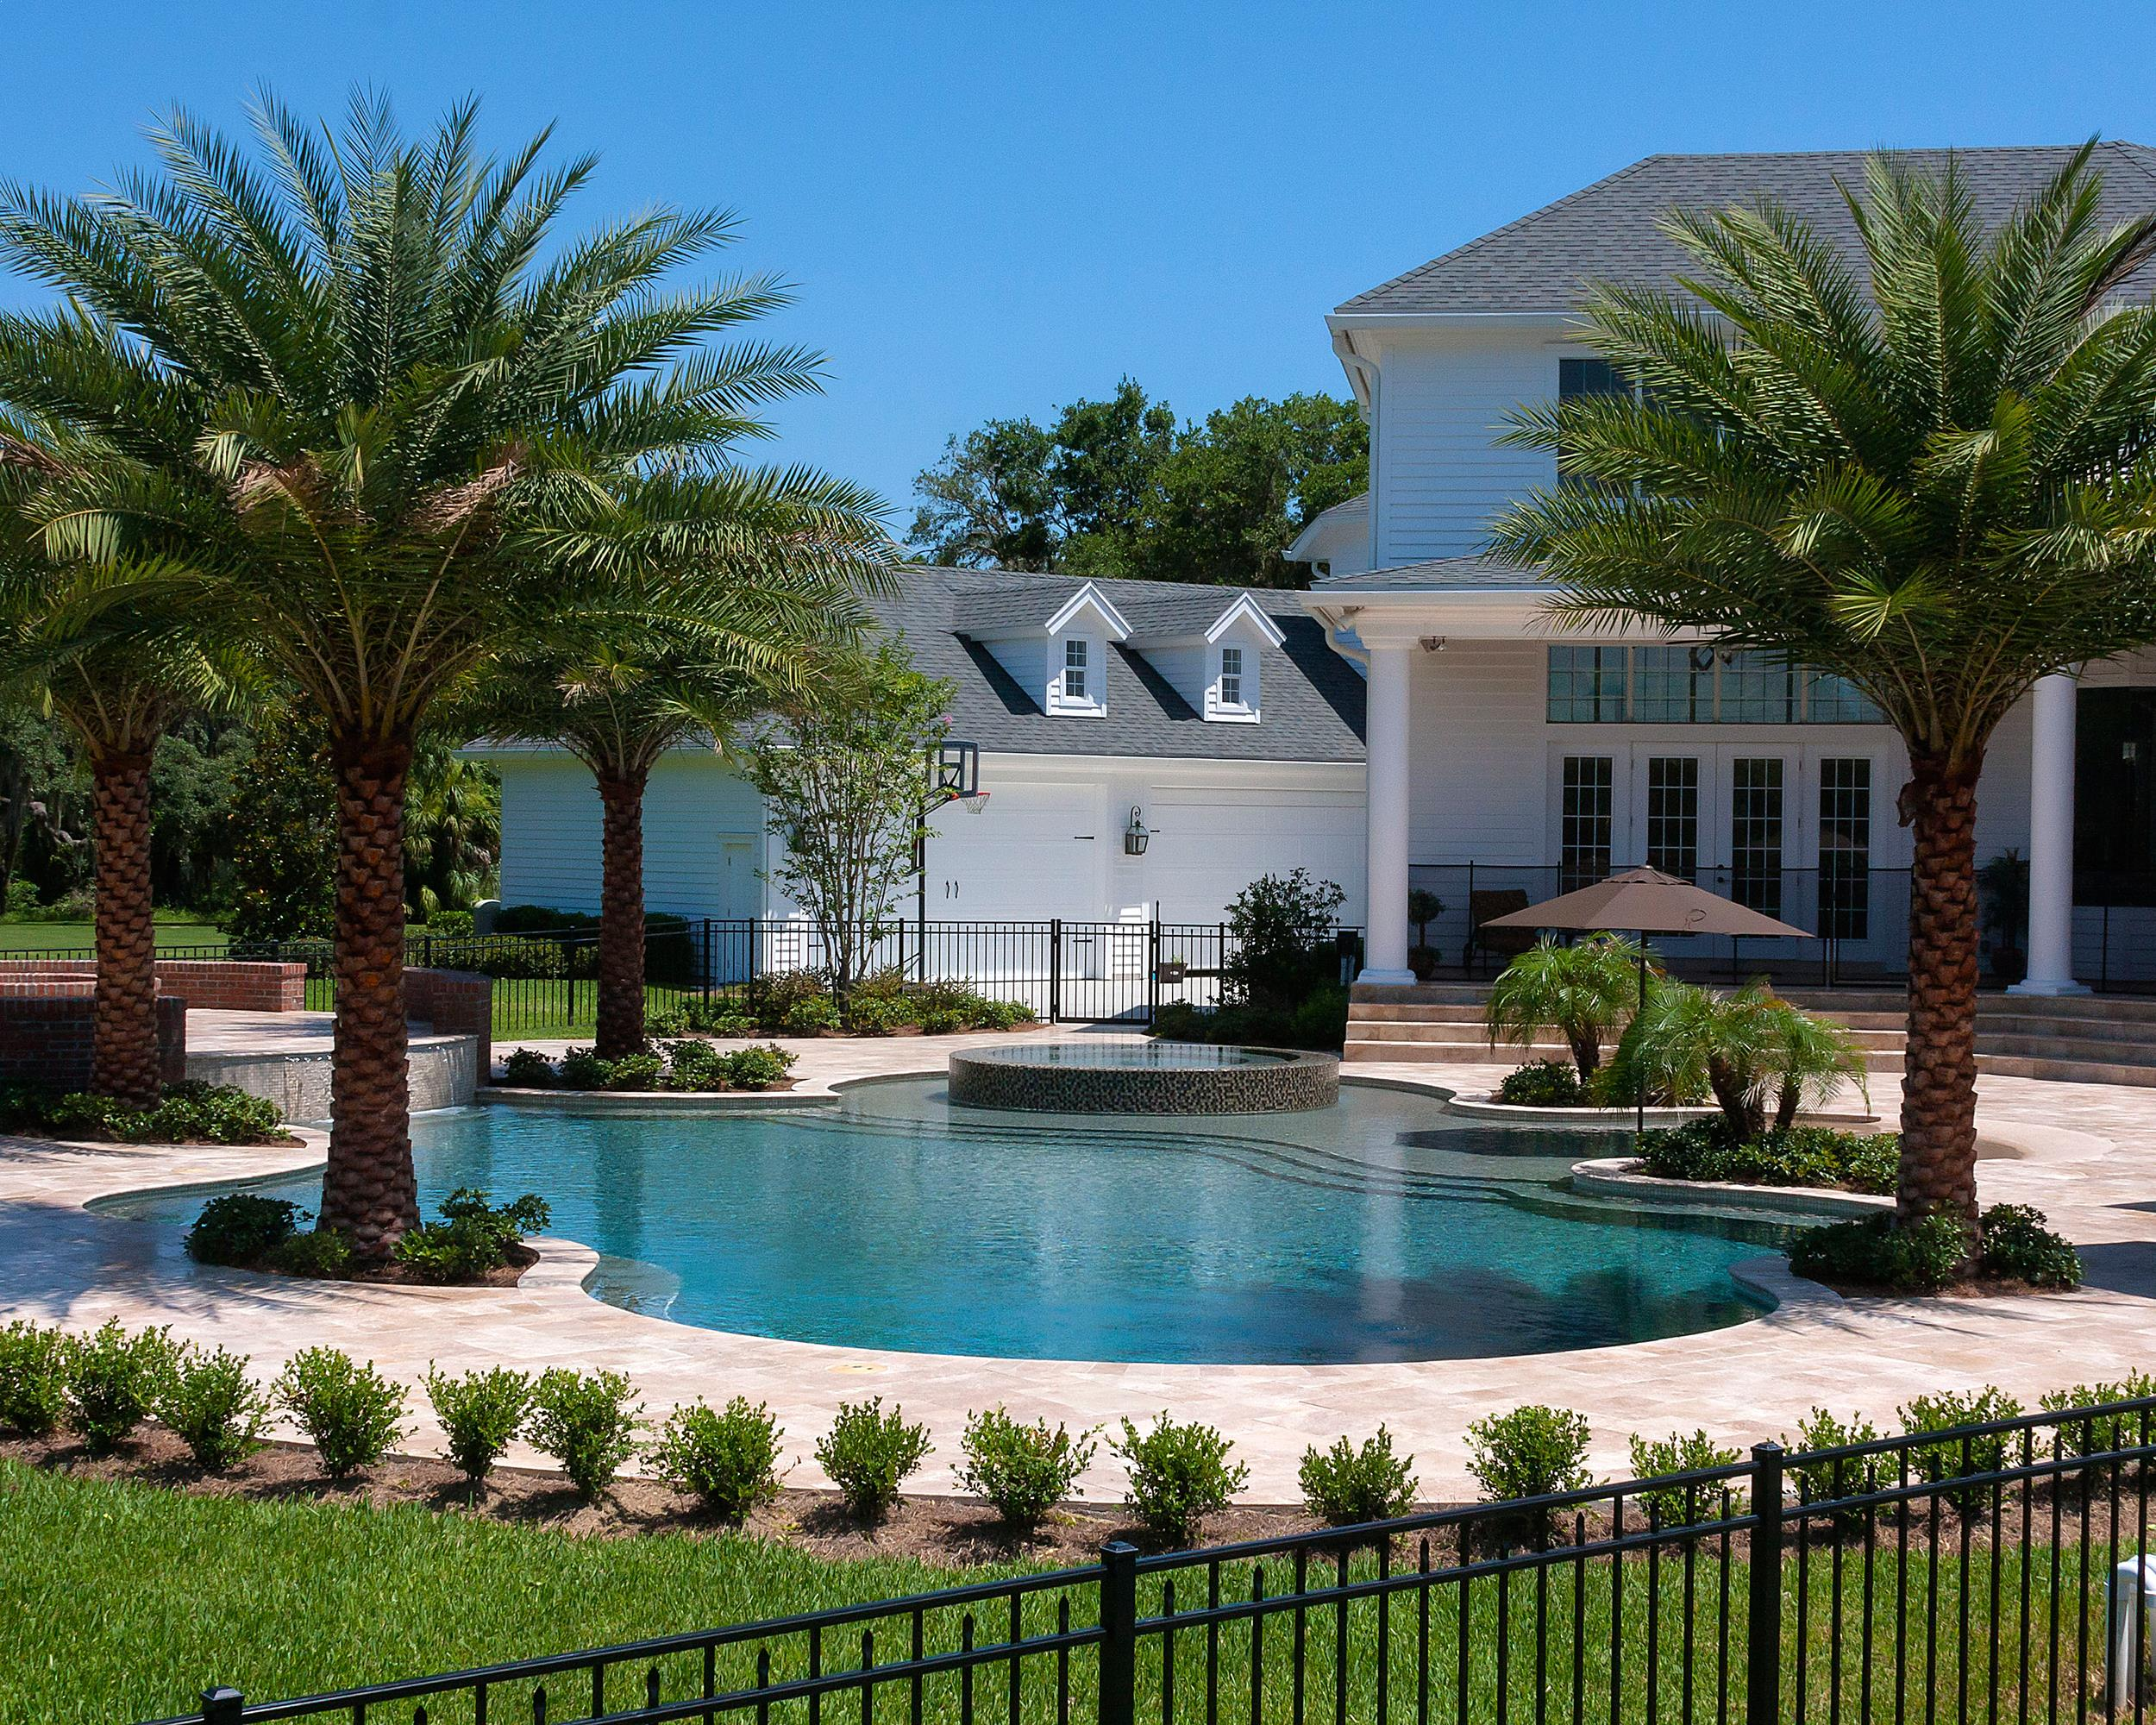 Odessa Pool Builder, Contractor, Remodeling, Outdoor Kitchens